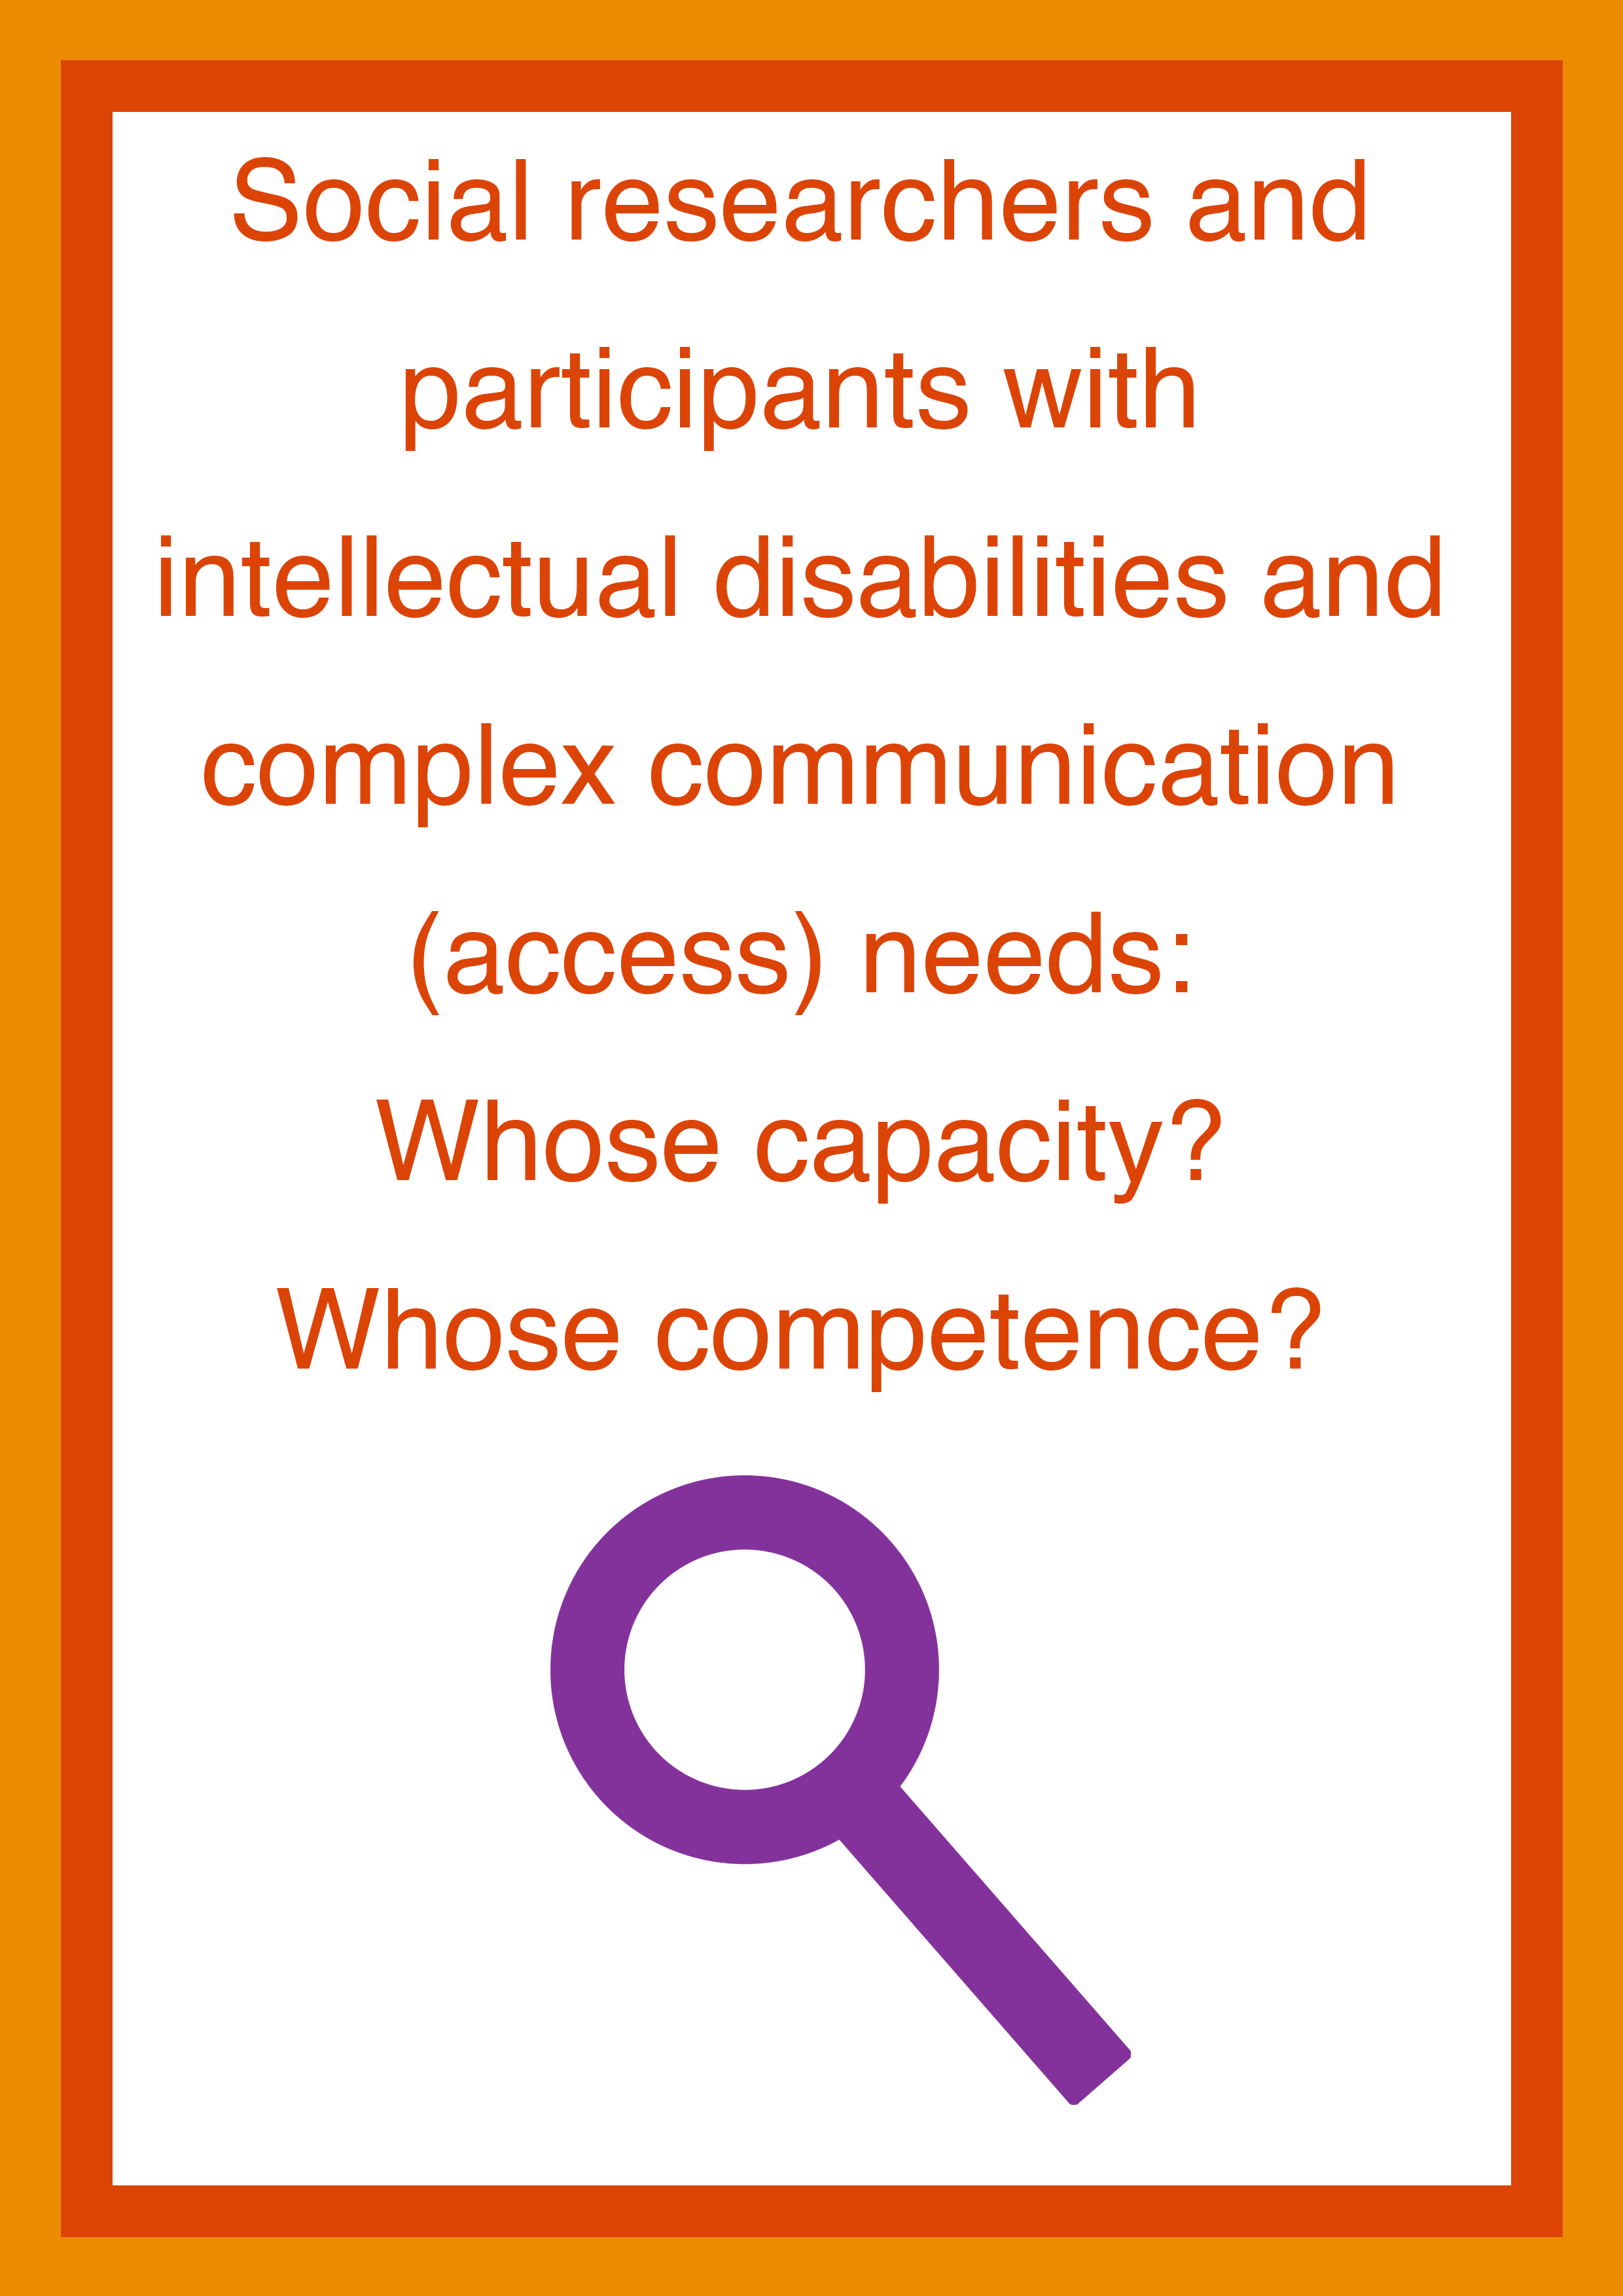 Cover art for: Social researchers and participants with intellectual disabilities and complex communication access needs: Whose capacity? Whose competence?